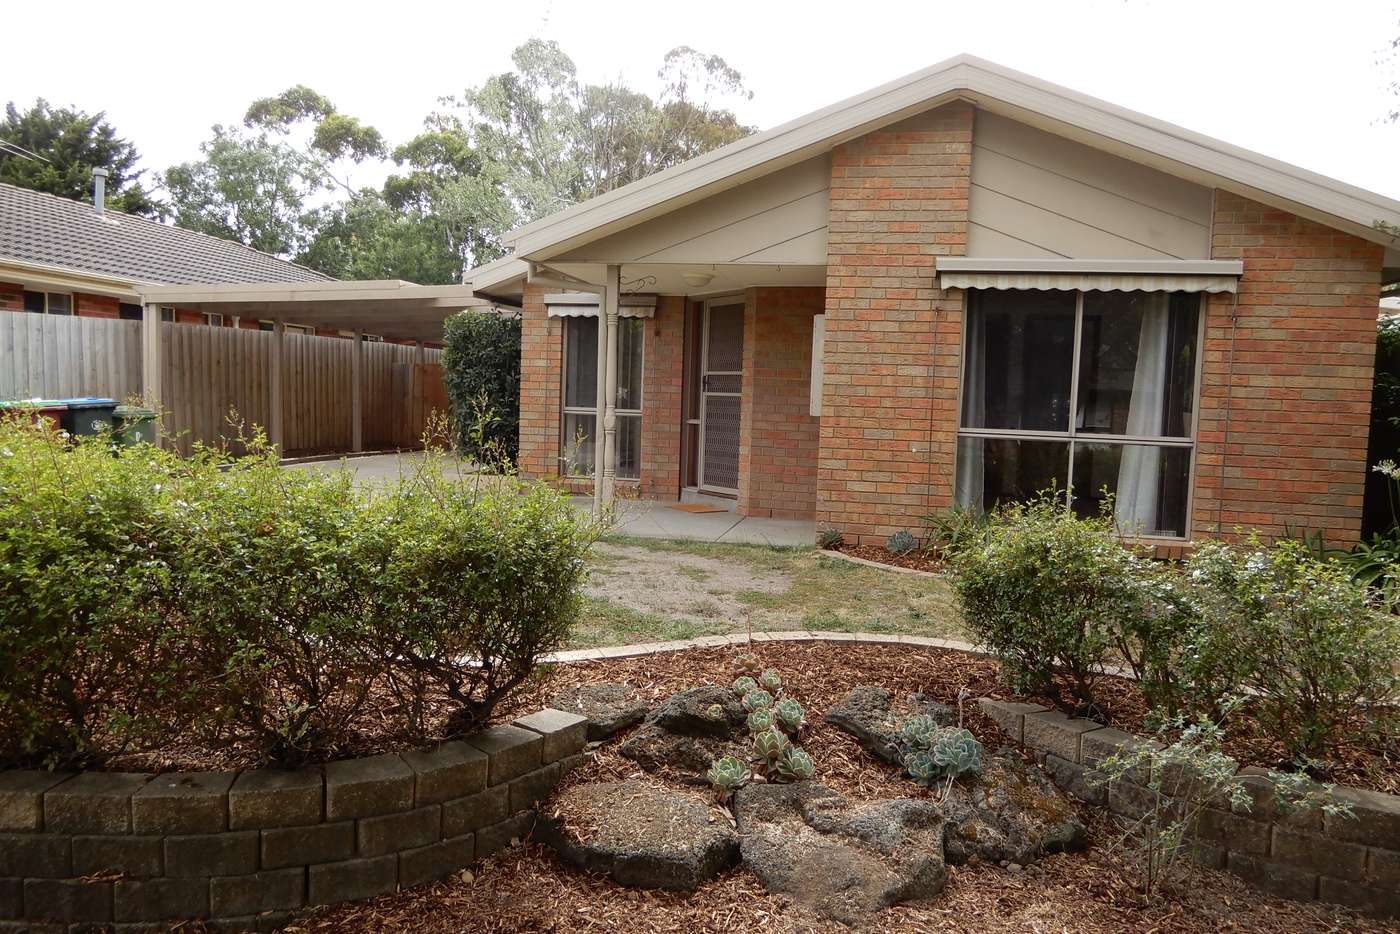 Main view of Homely house listing, 4 Gifford Close, Berwick VIC 3806